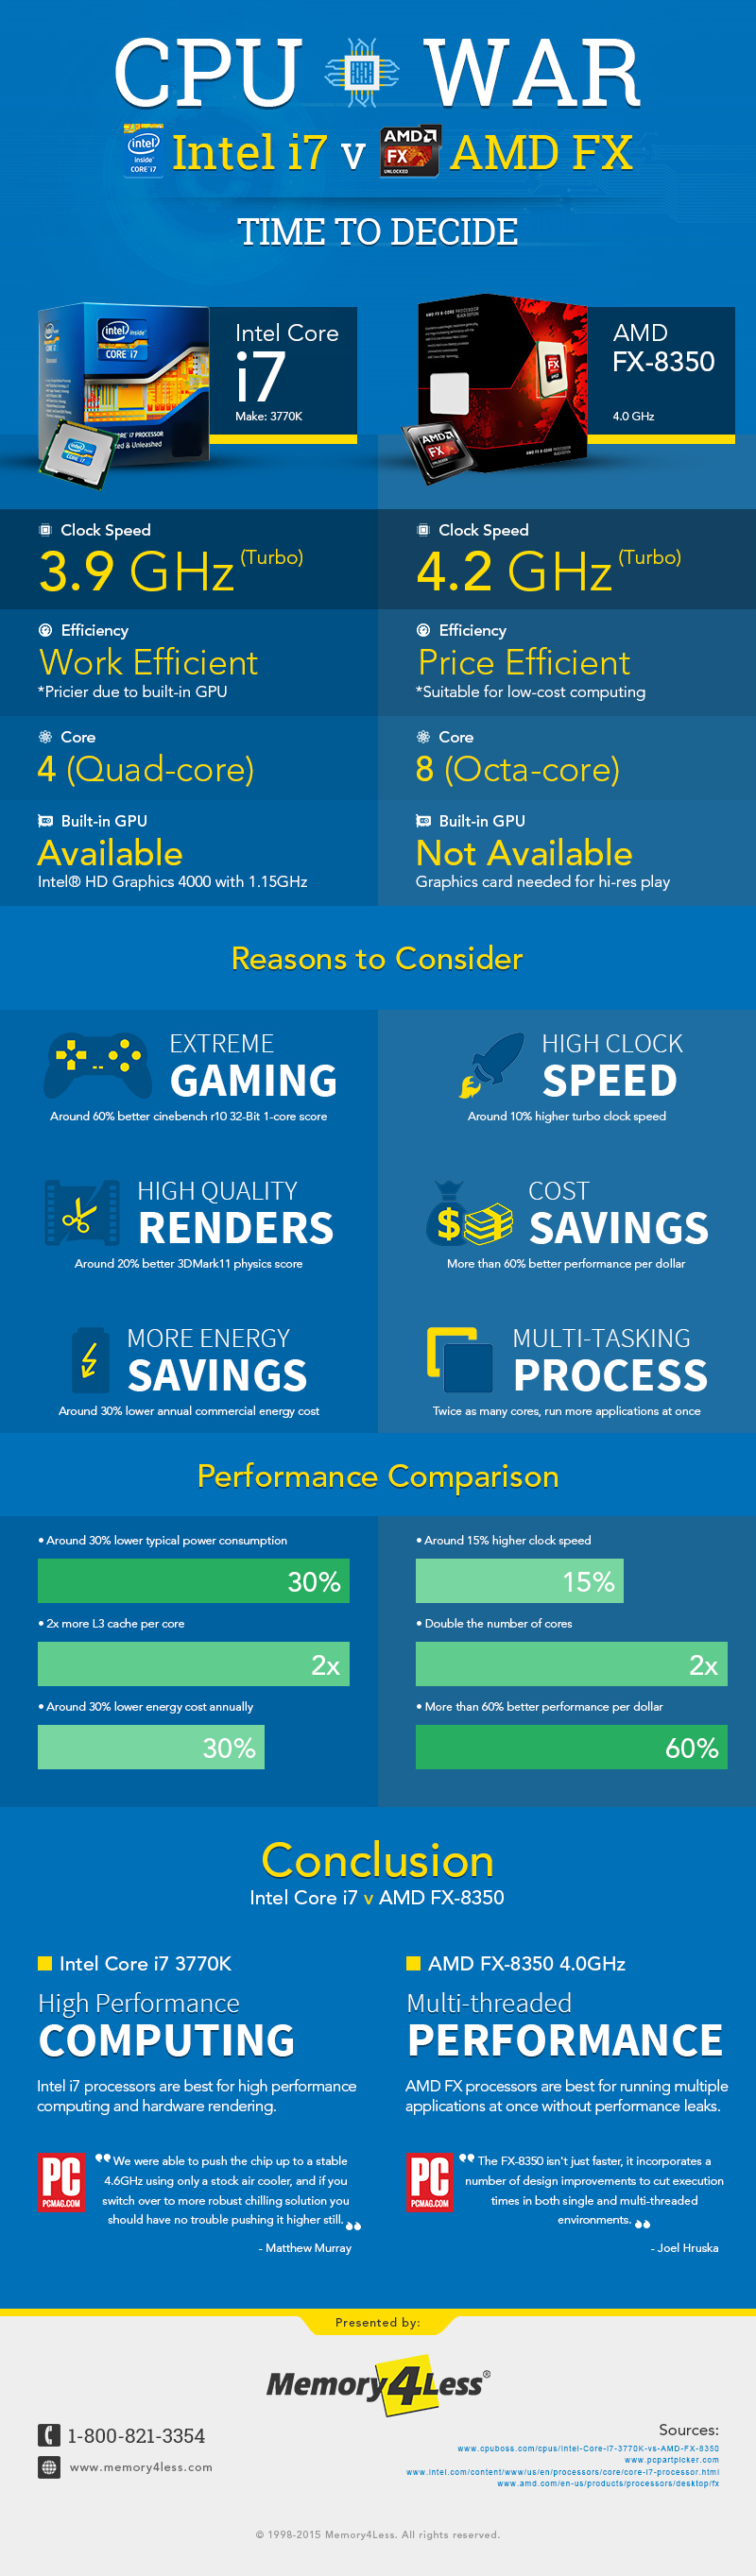 Intel or AMD: The CPU War Continues  Check out their